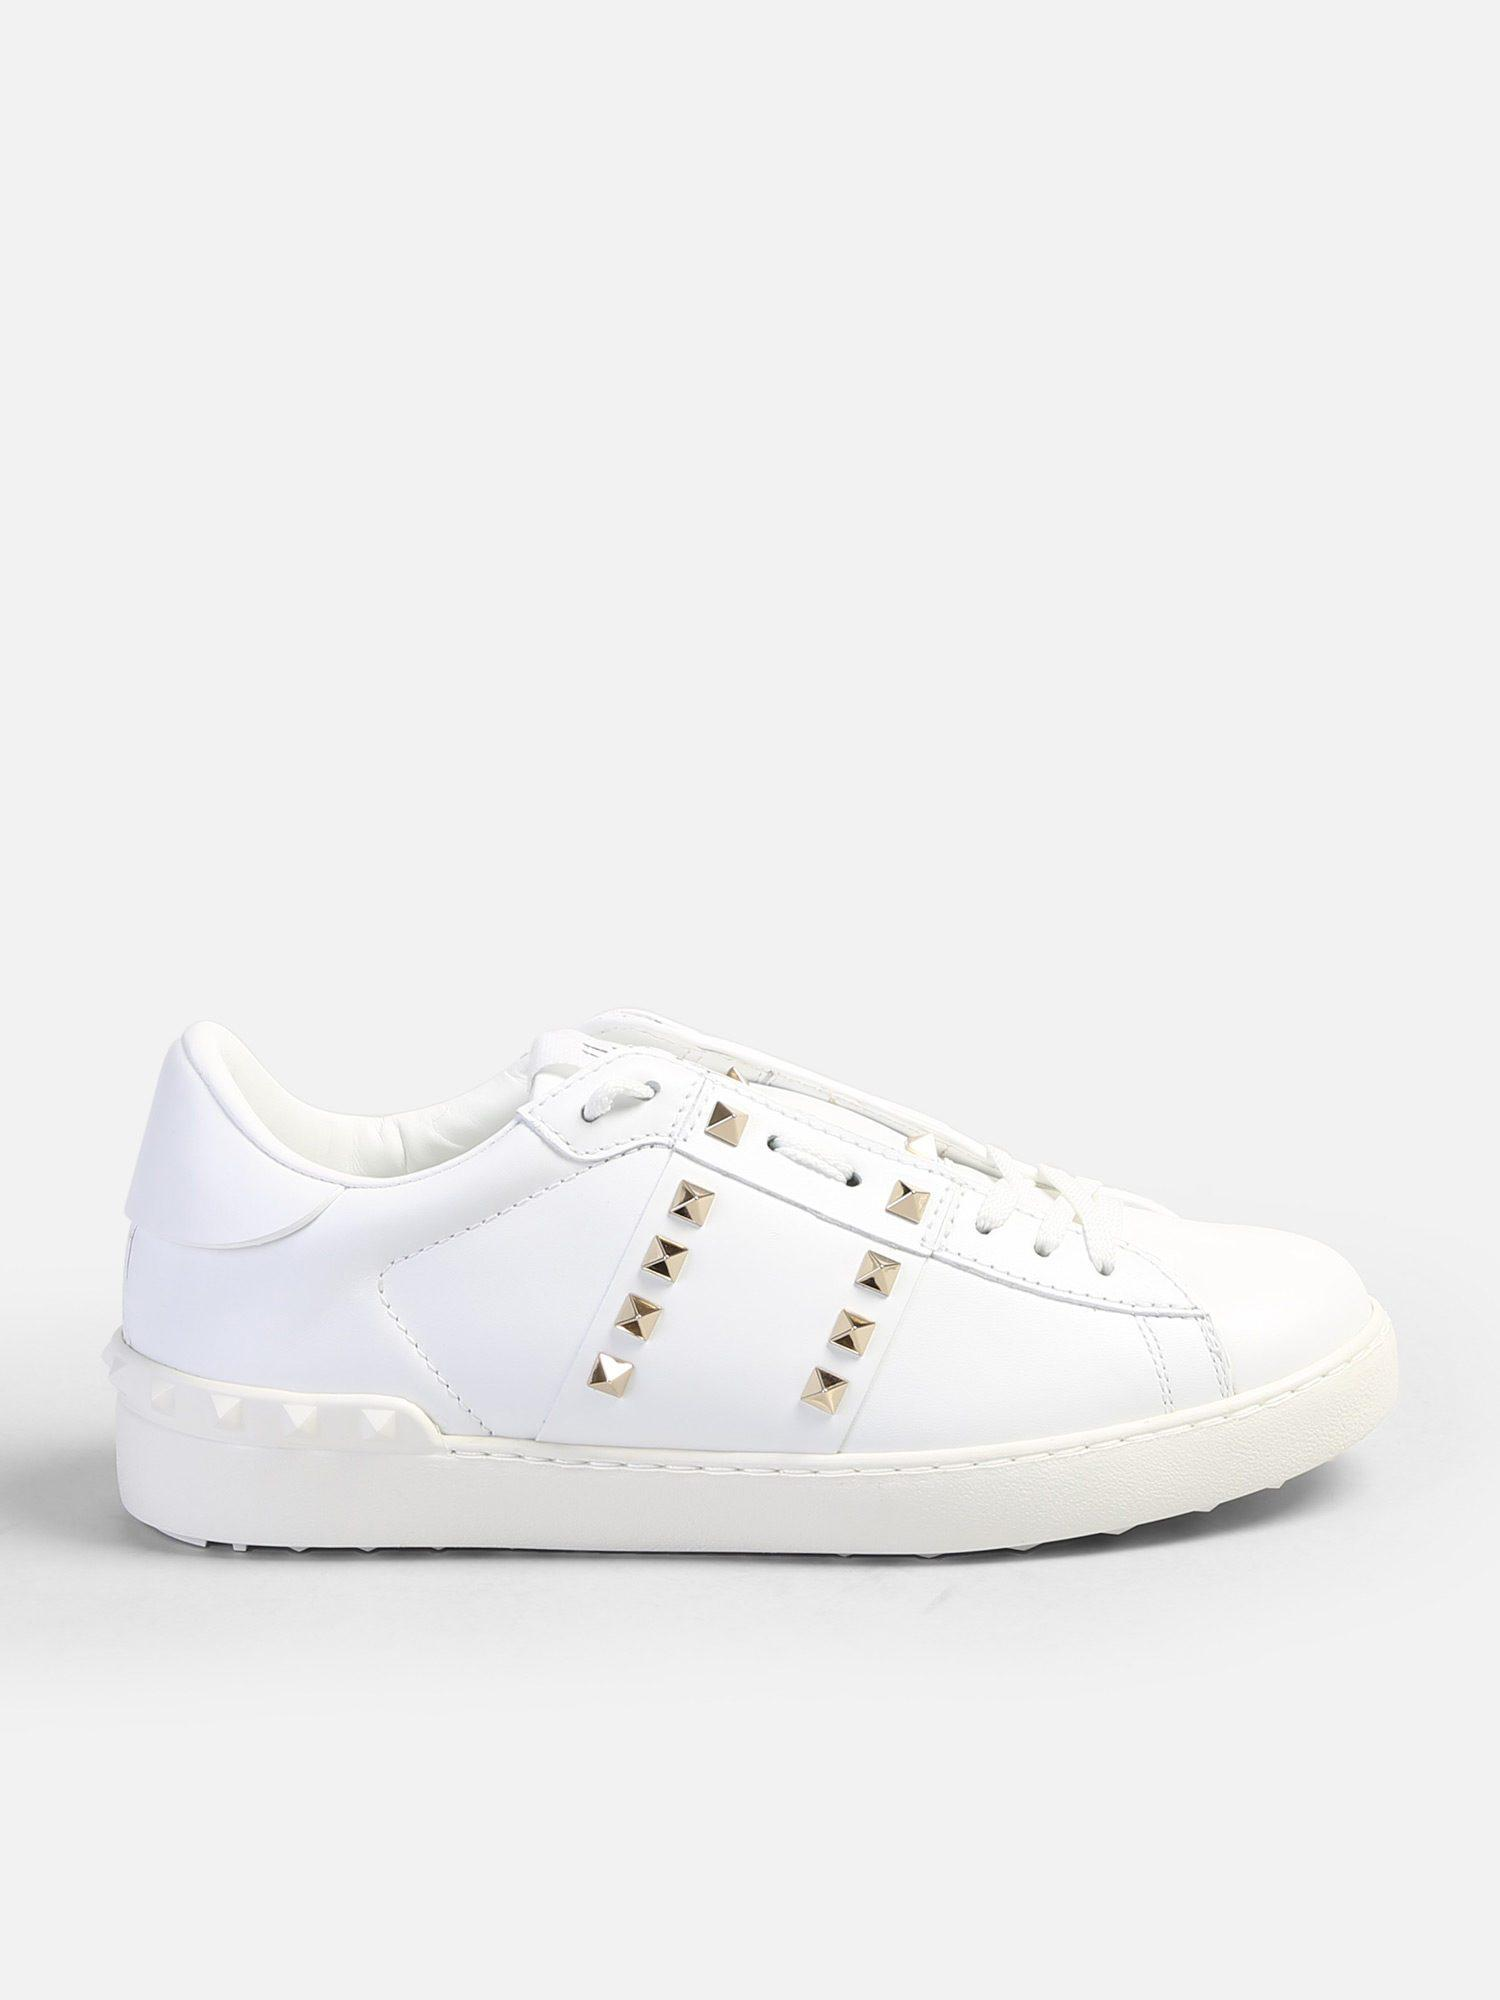 bafc3868f75f Lyst - Valentino Rockstud Leather Sneakers in White for Men